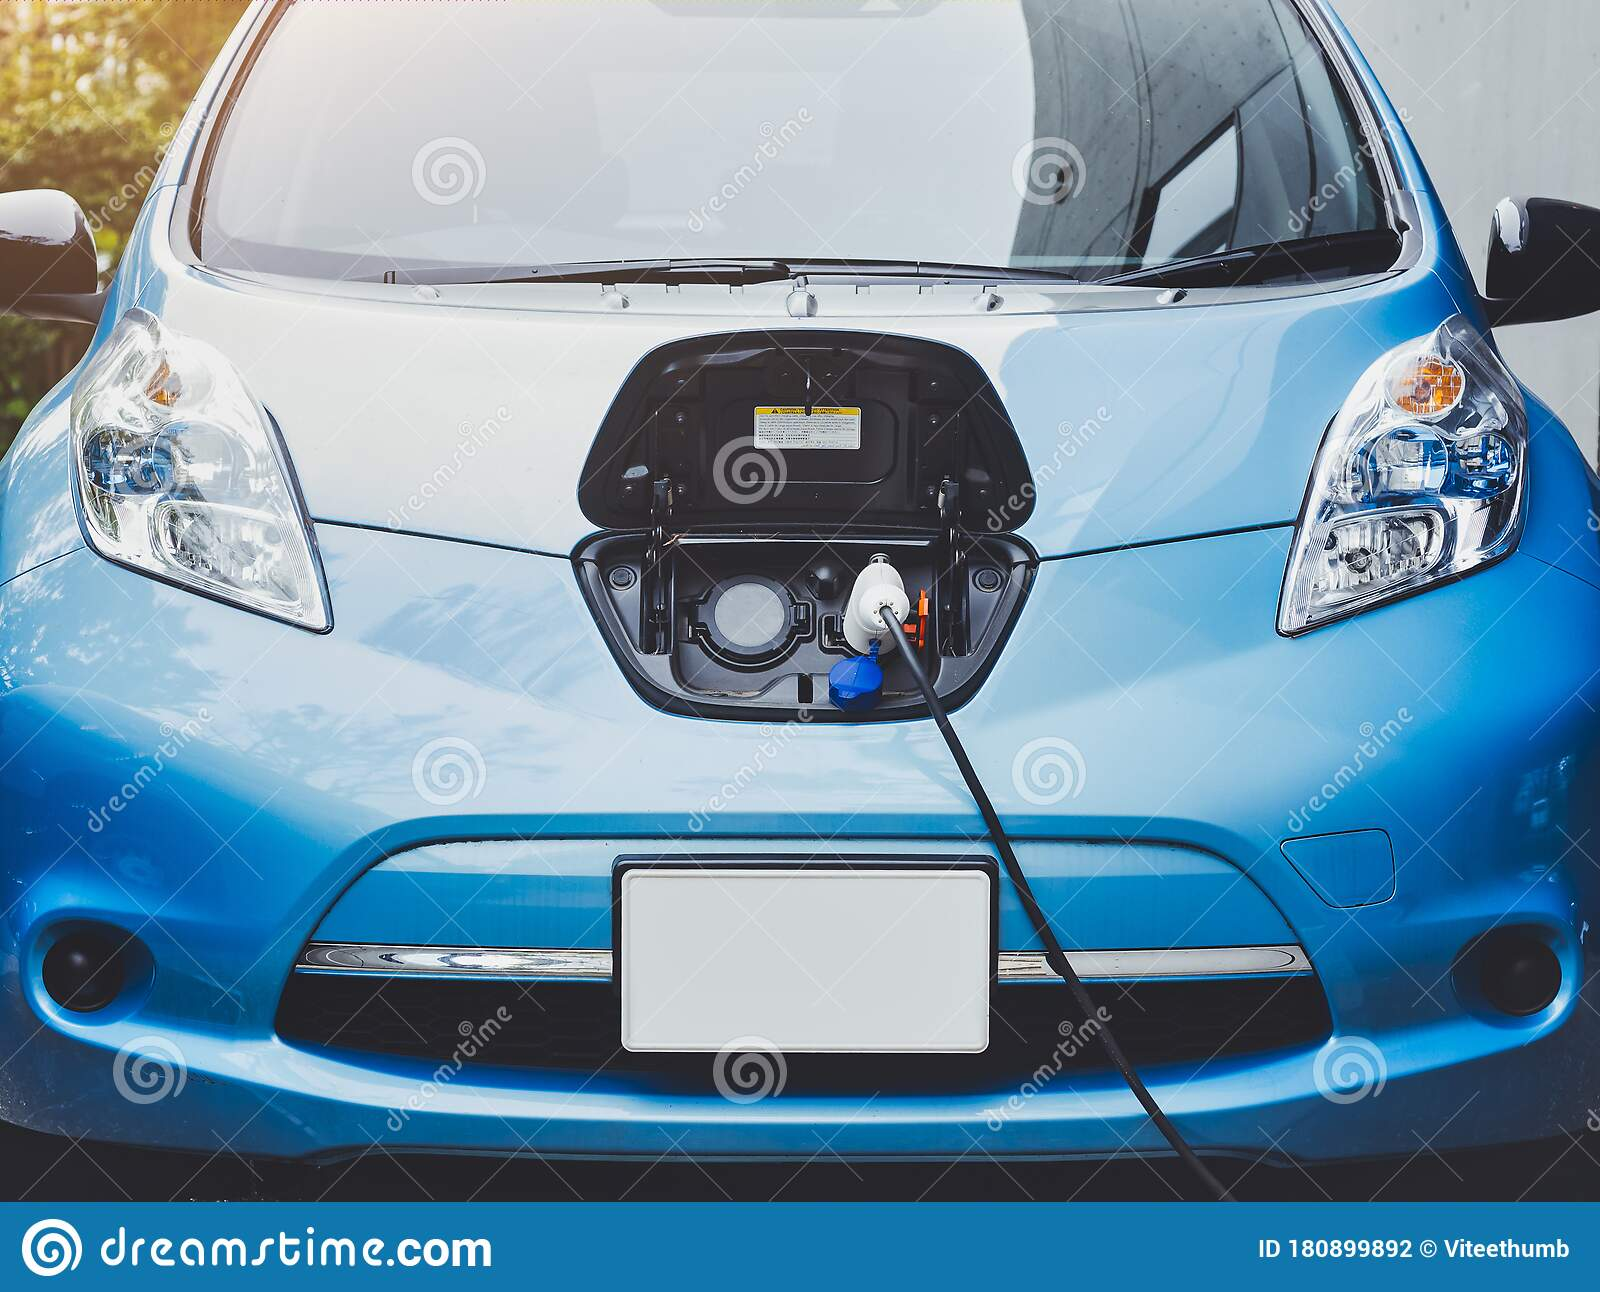 Electric Car Ev Car Power Charge Station With Fuel Charger Cable Clean Power Technology Editorial Photography Image Of Alternative Savings 180899892